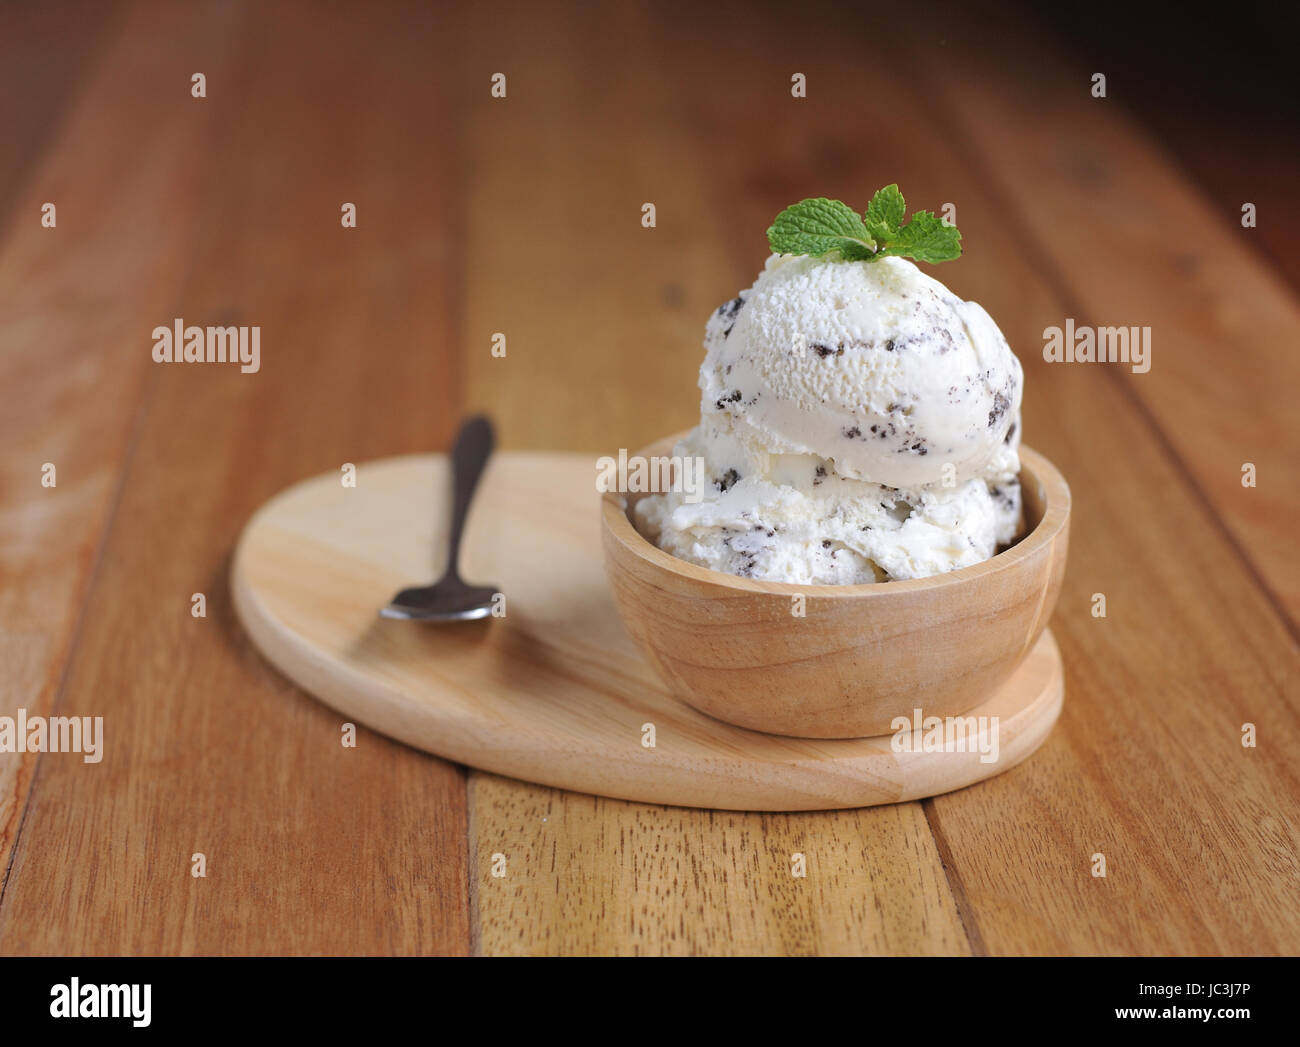 Vanilla Ice Cream with Mint in bowl Homemade Organic product - Stock Image